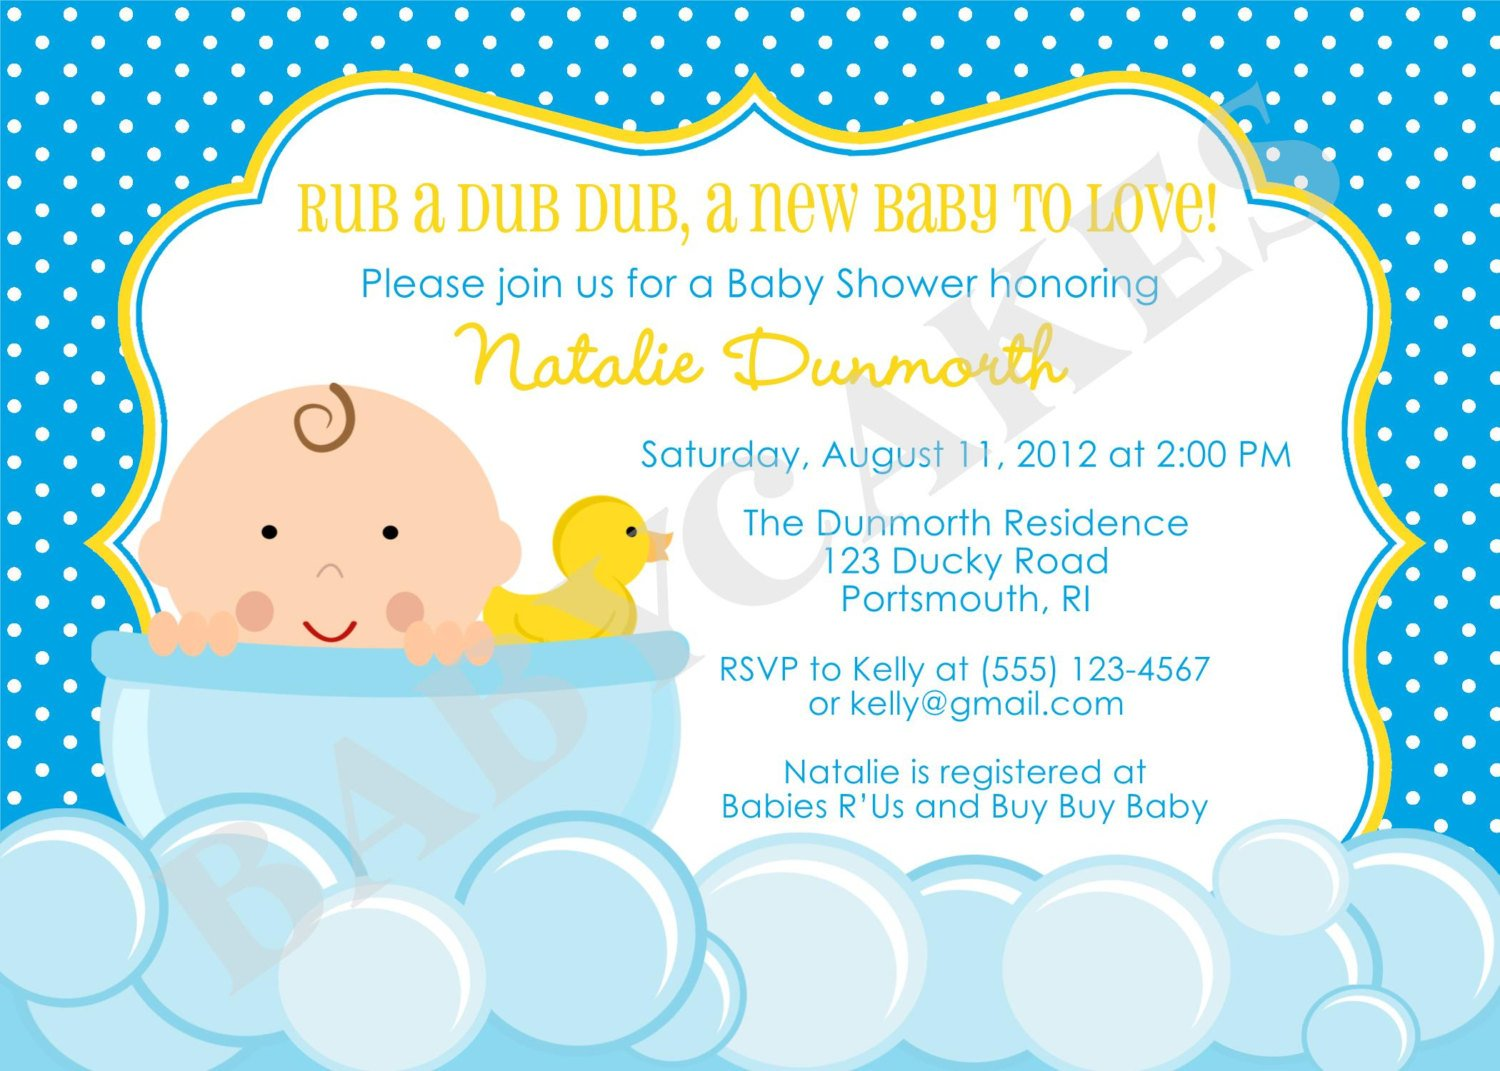 Yellow Rubber Ducky Baby Shower Ideas